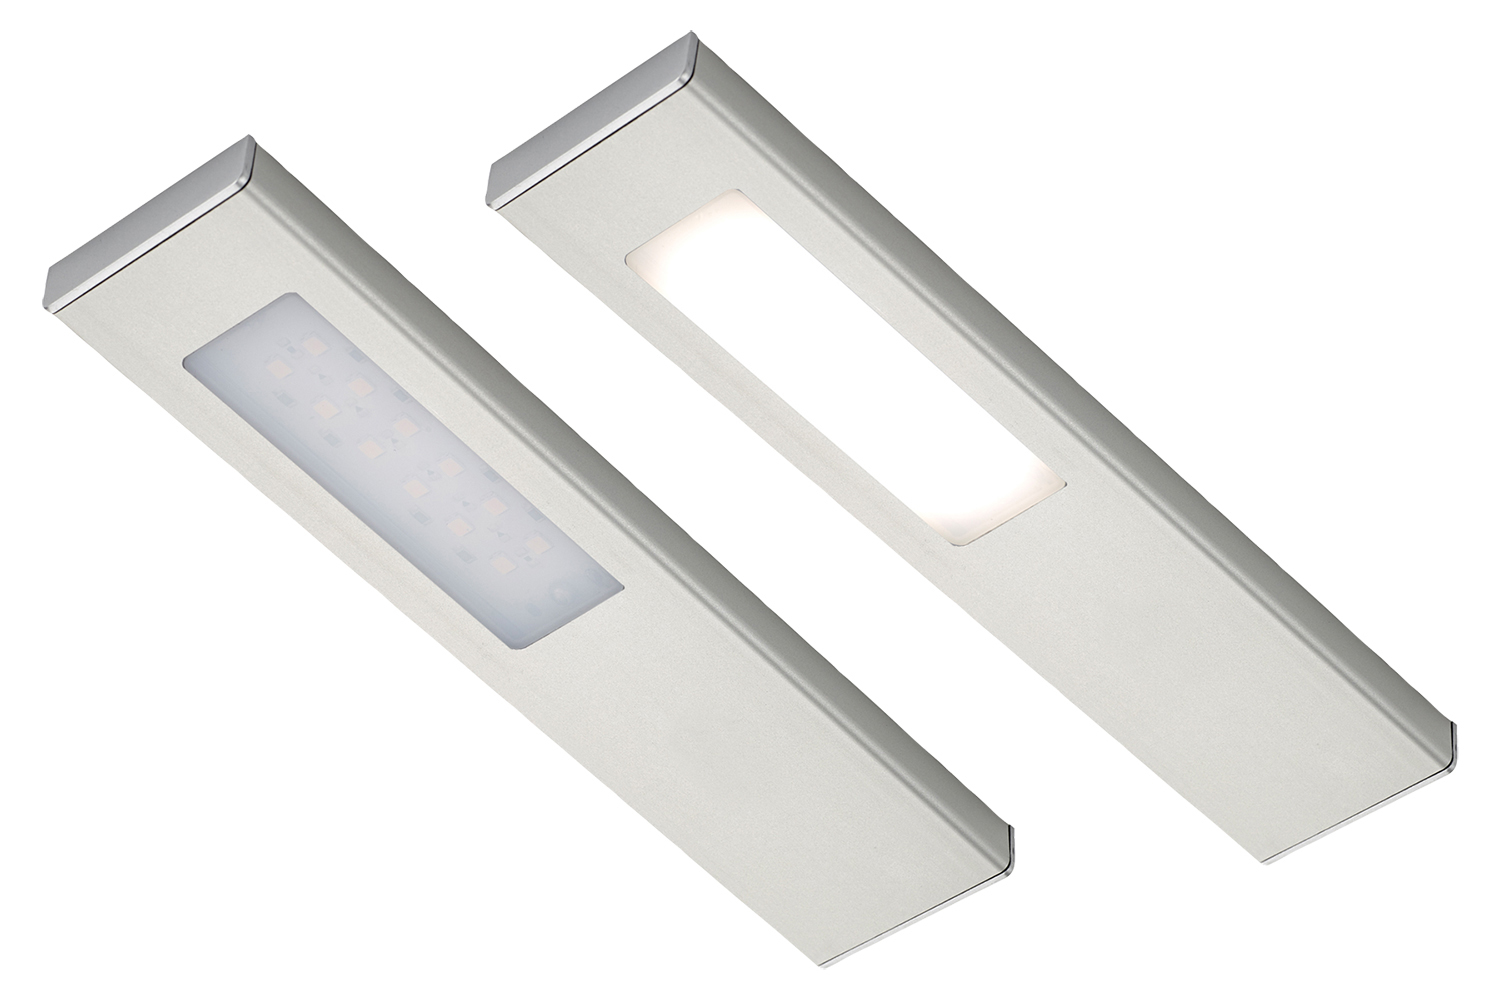 Sensio SLS Quadra LED Under / Over Cabinet Light Warm White - 2 Light Kit